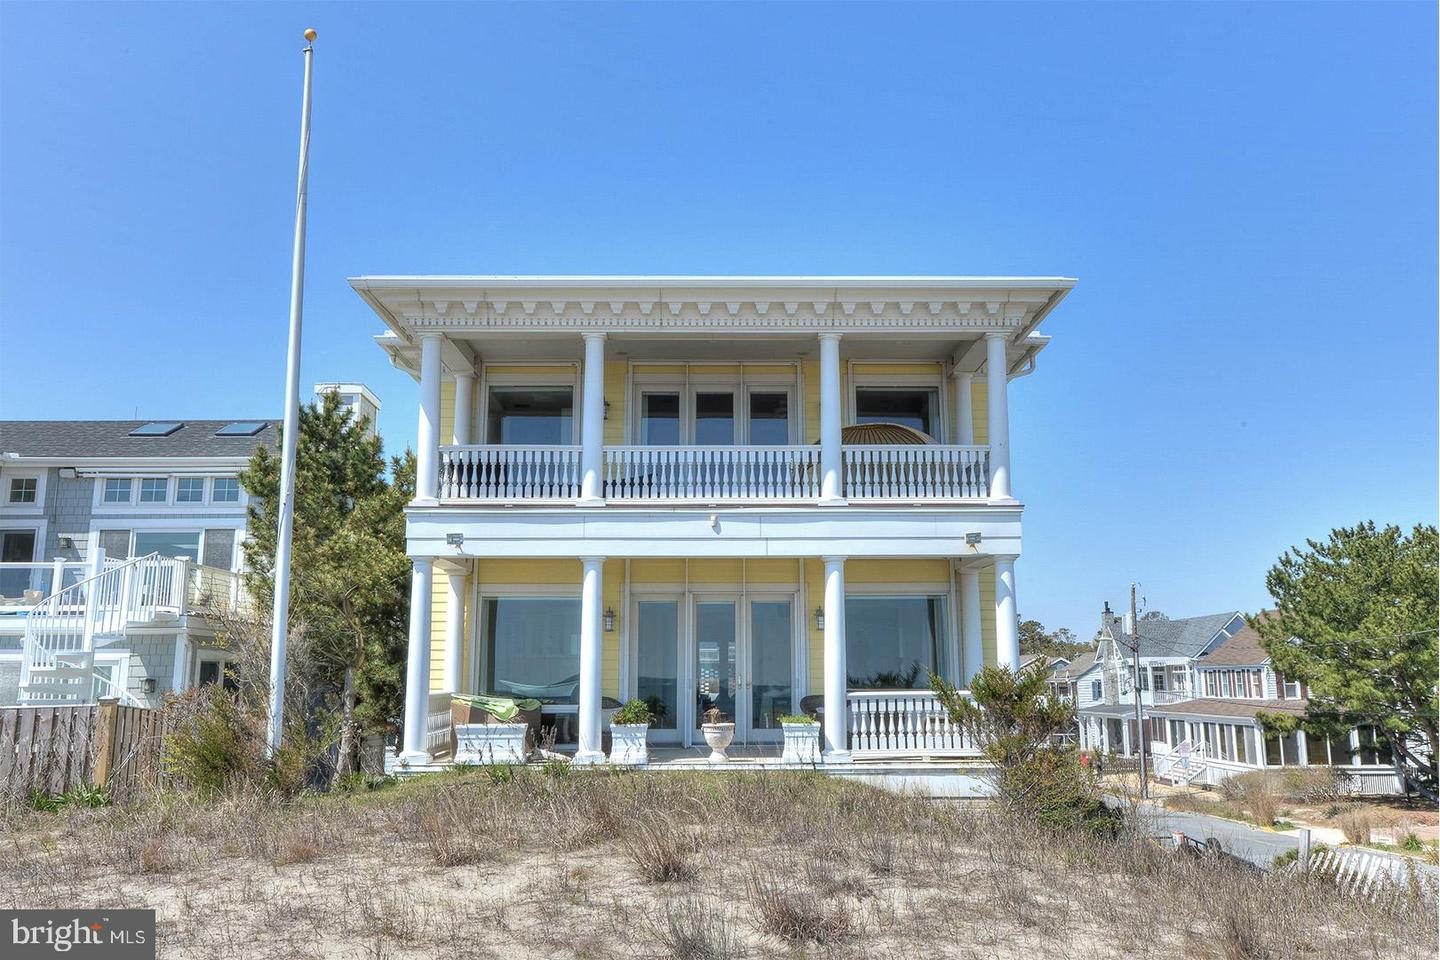 DESU159700-304100429354-2020-05-01-17-16-50 4 Prospect St | Rehoboth Beach, DE Real Estate For Sale | MLS# Desu159700  - Lee Ann Group